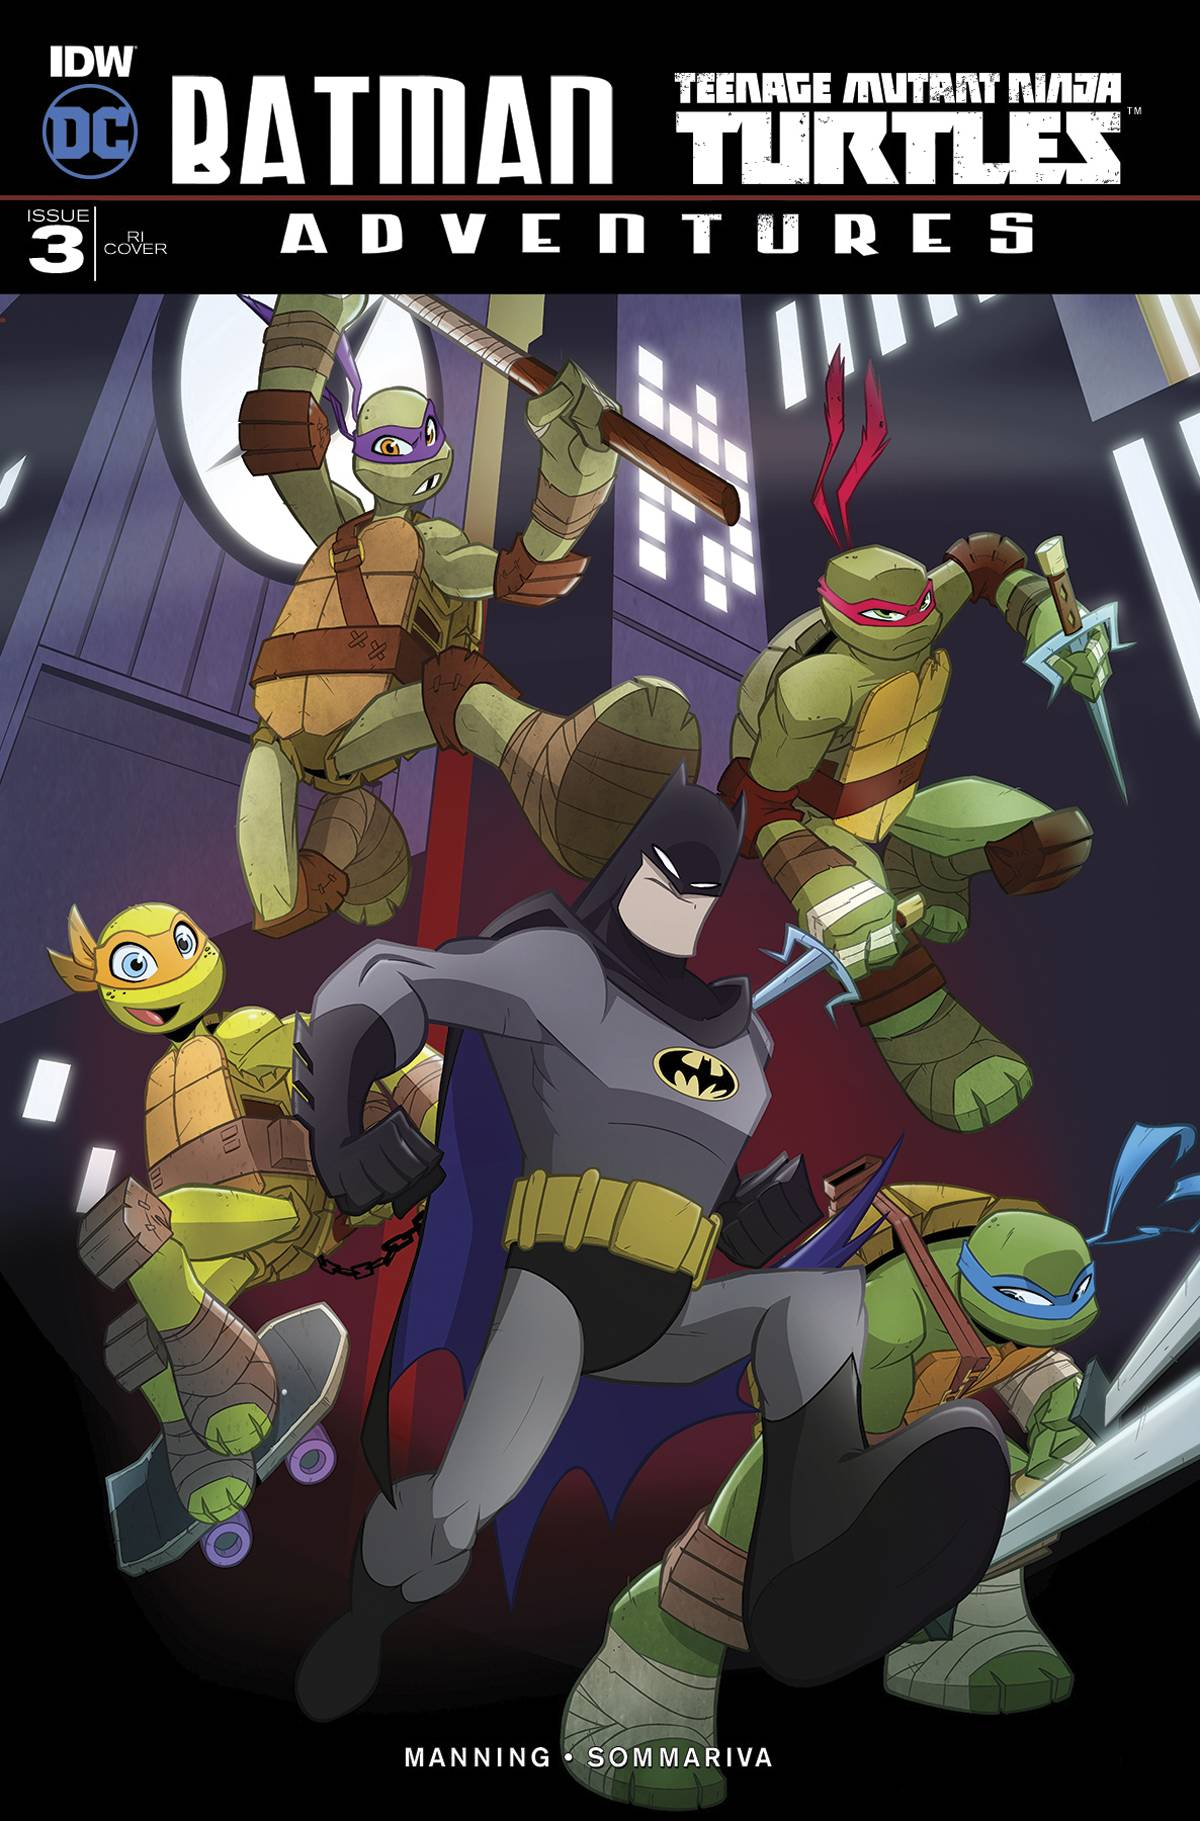 BATMAN TMNT ADVENTURES #3